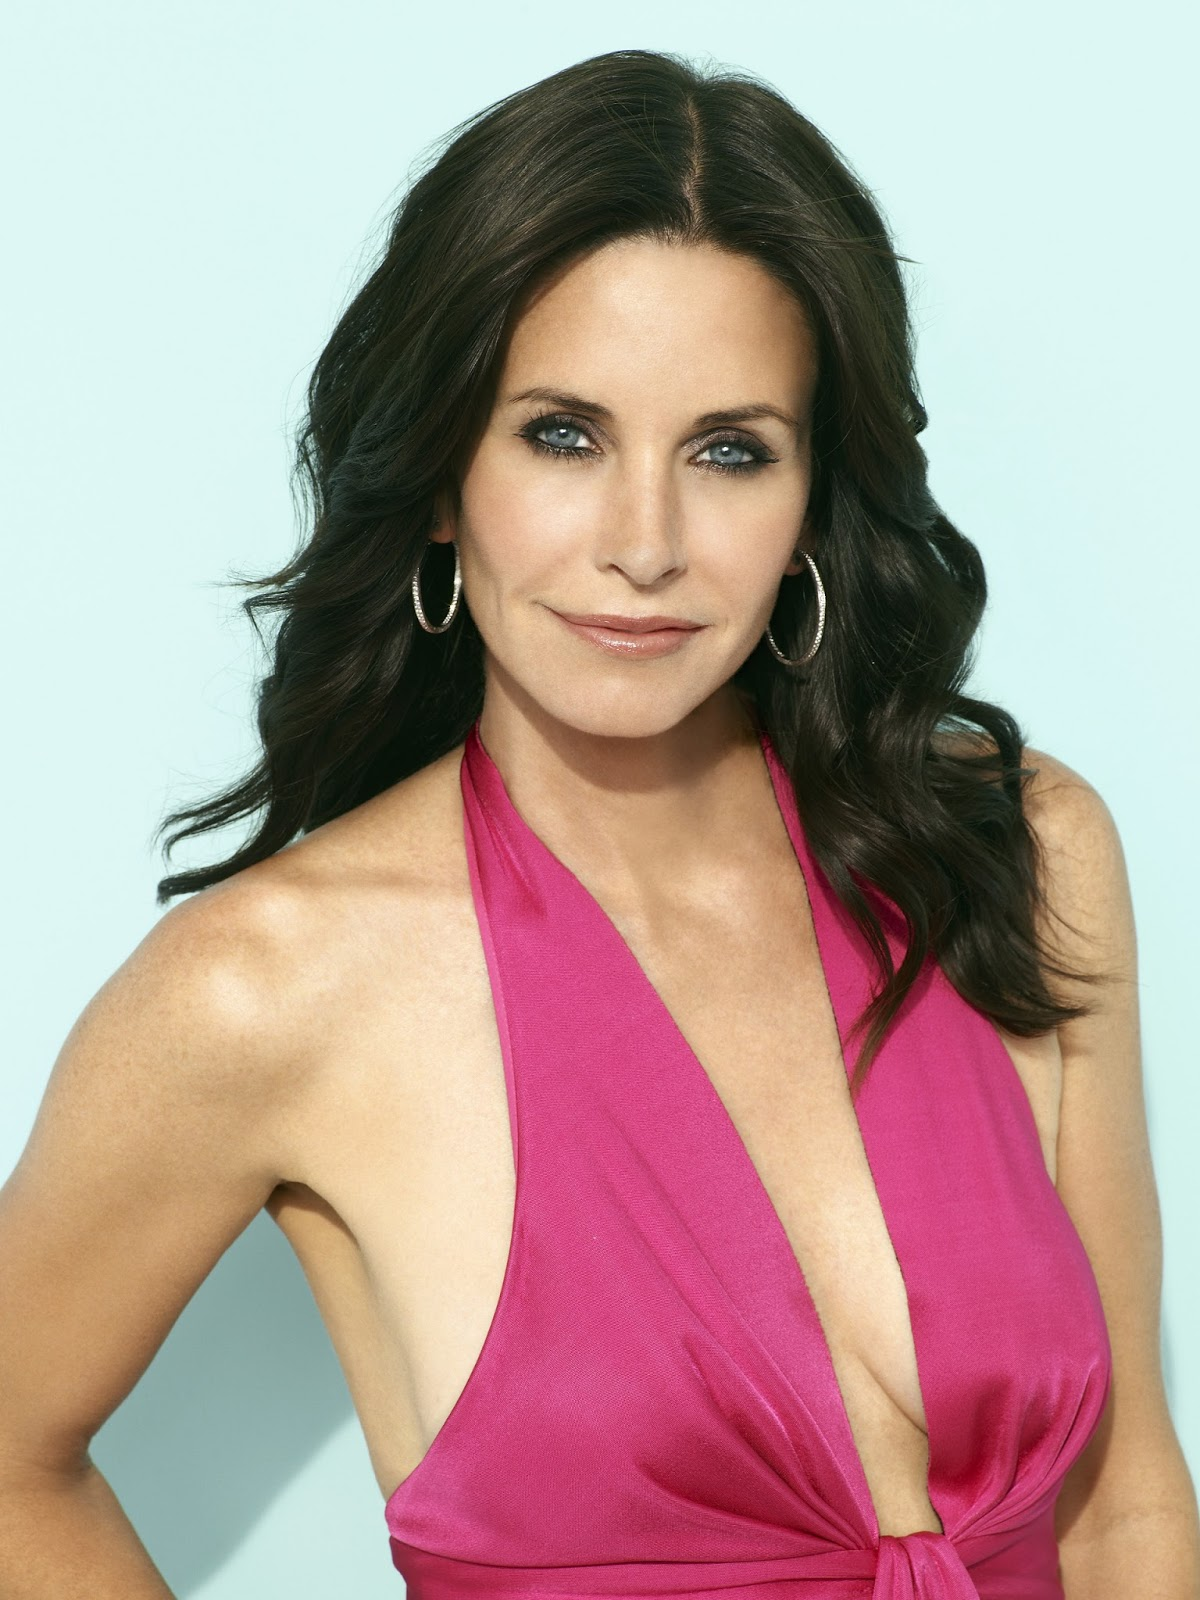 Courteney Cox Forty Nine Years Old Courteney Cox Is An American